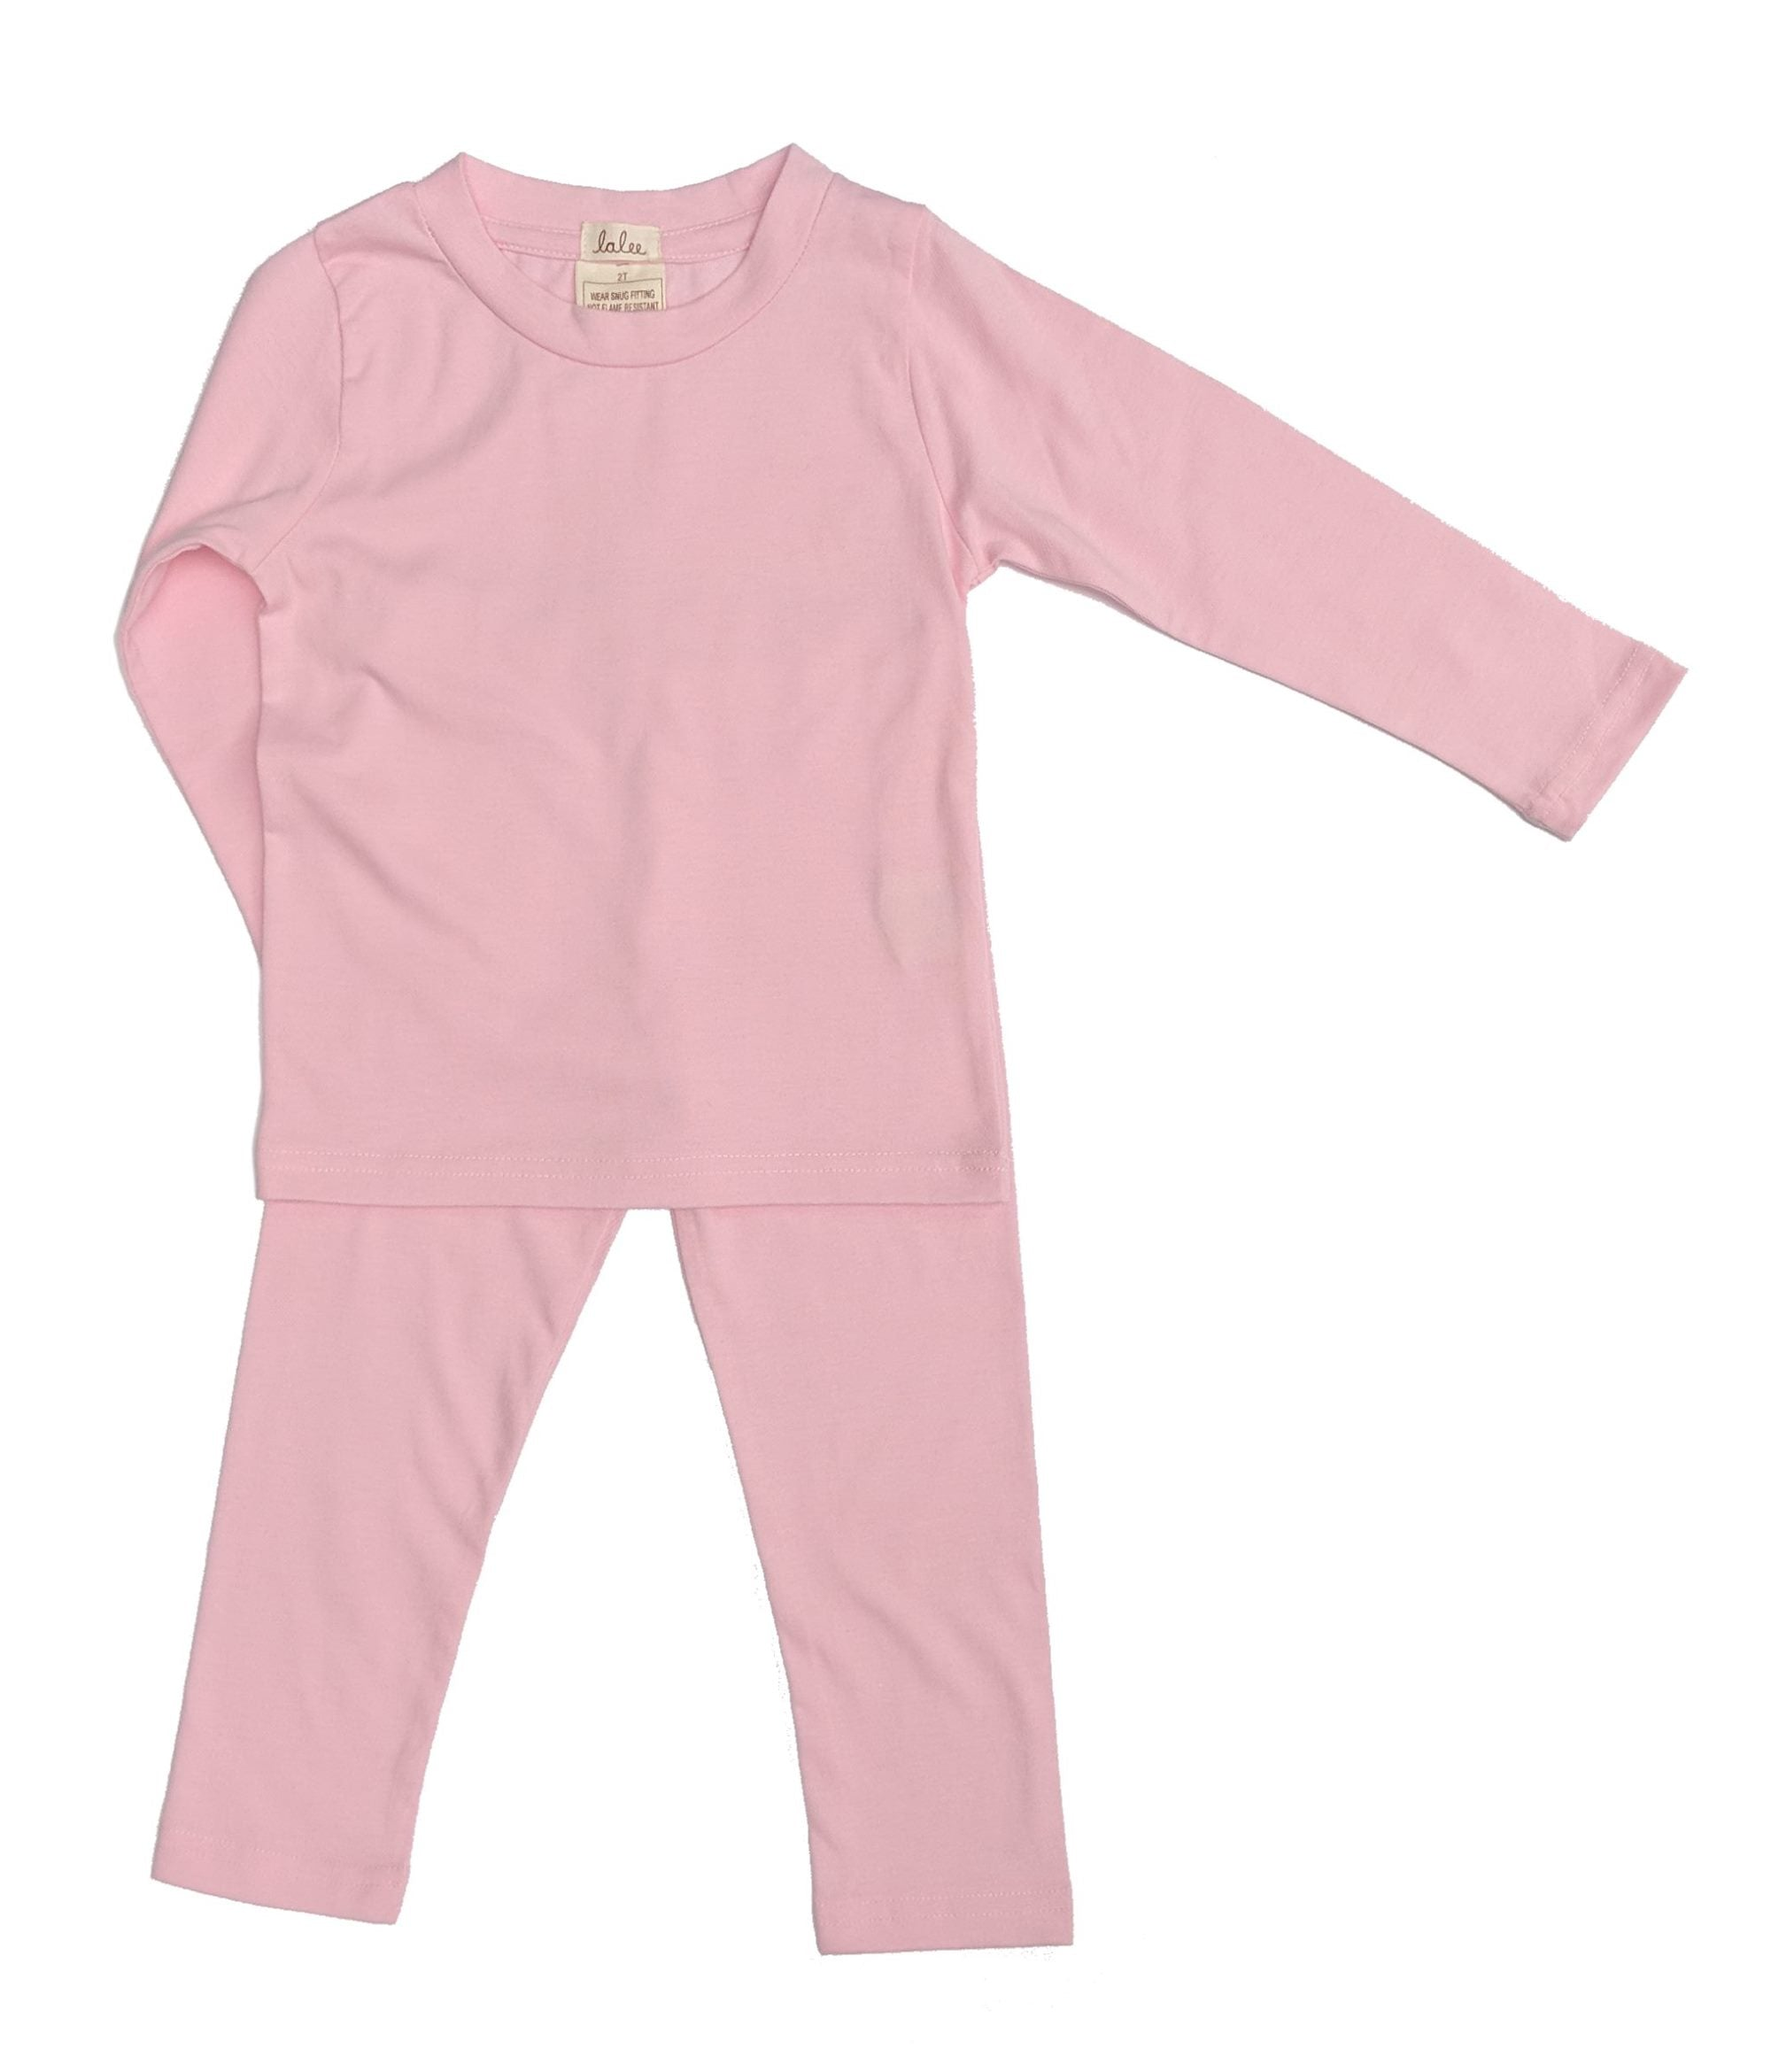 Organic Cotton Pajamas Set - Pink